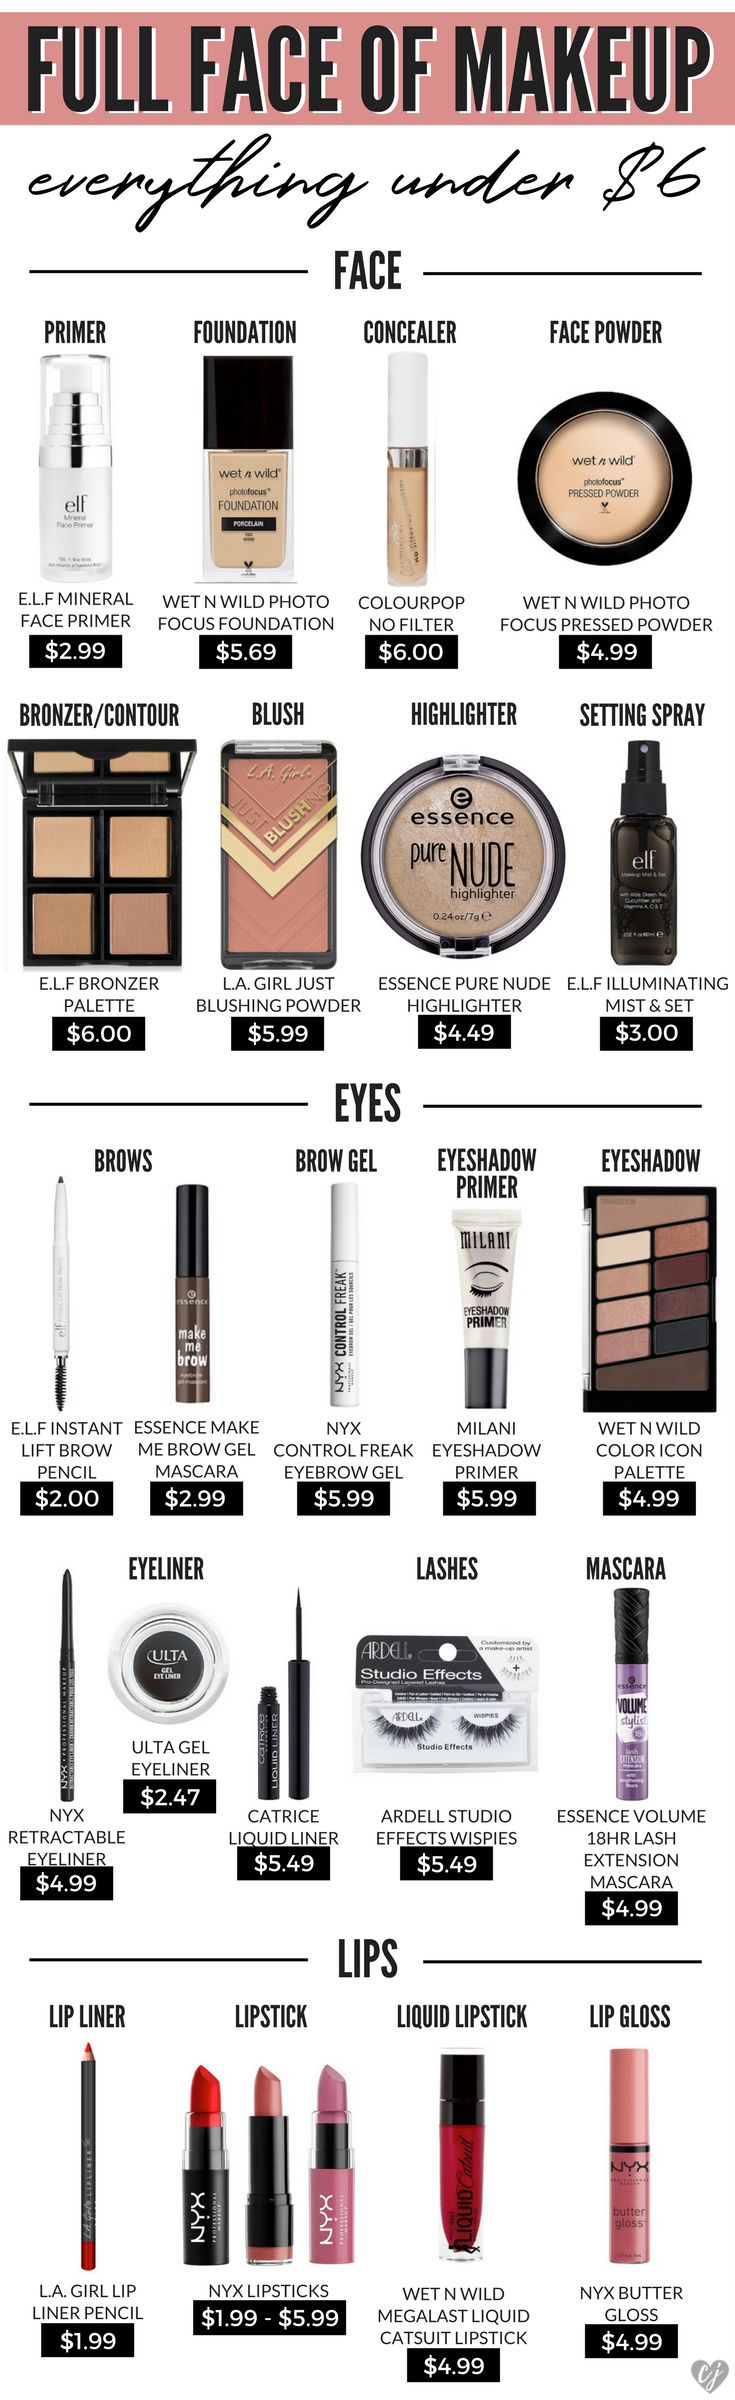 This is your complete guide to a full face of makeup with everything under $6! If you think you've found affordable makeup, wait until you try these!